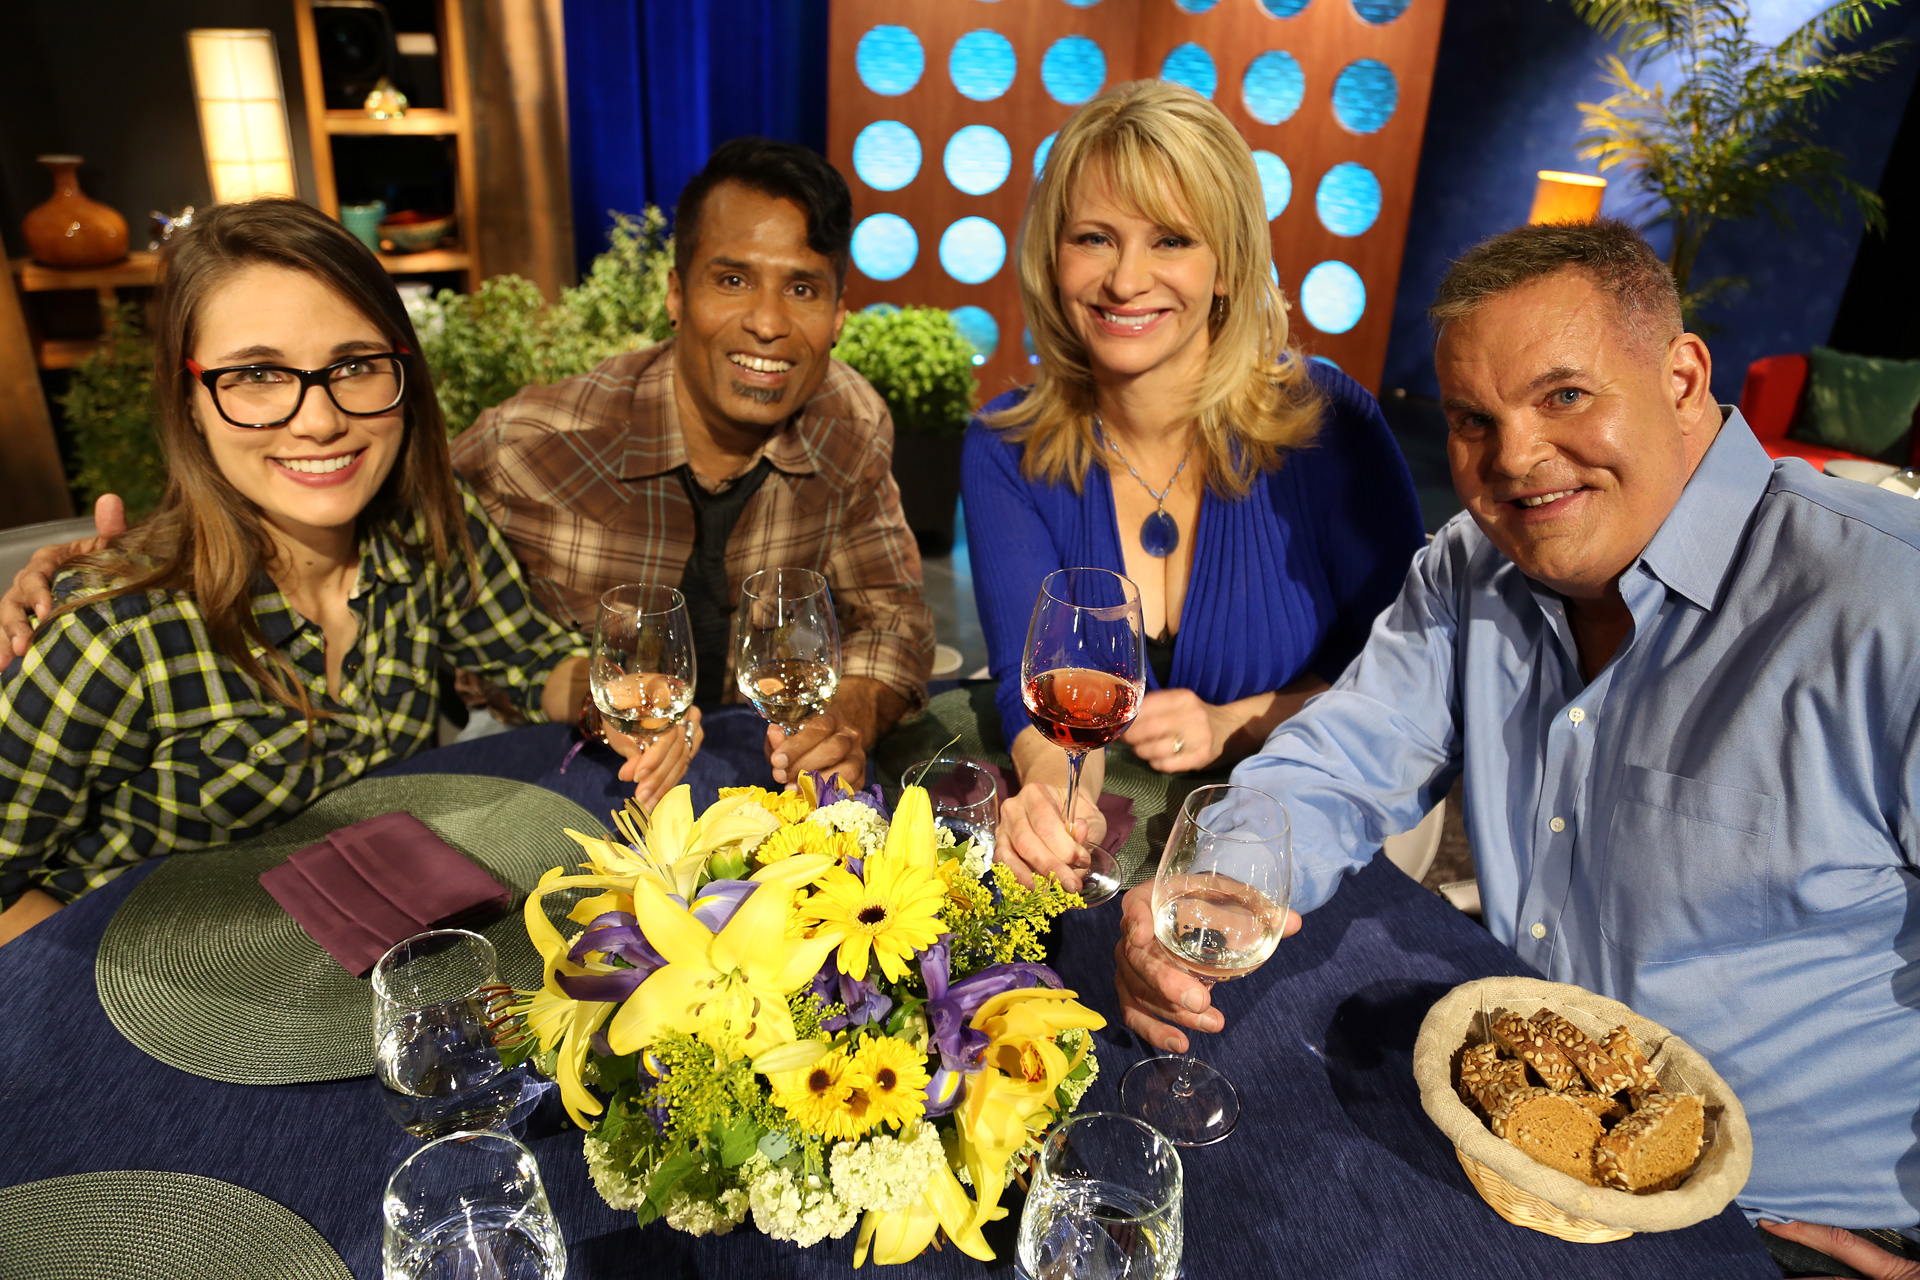 Host Leslie Sbrocco and guests on the set of the episode 11 of season 14.